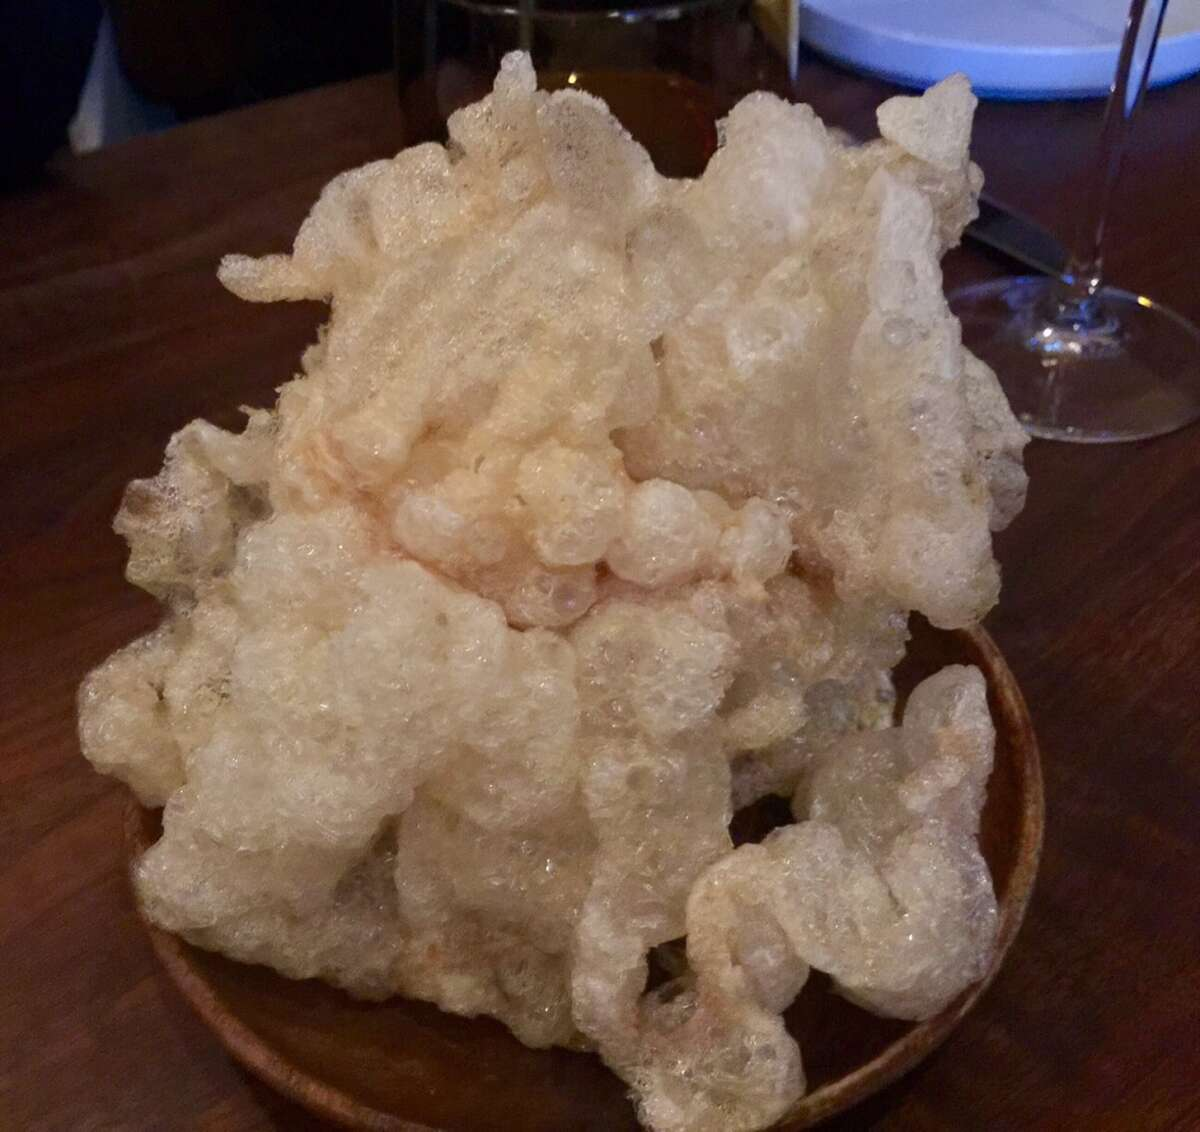 Beef tendon puffs are crisp but melt like lardo when they hit the tongue ($7).